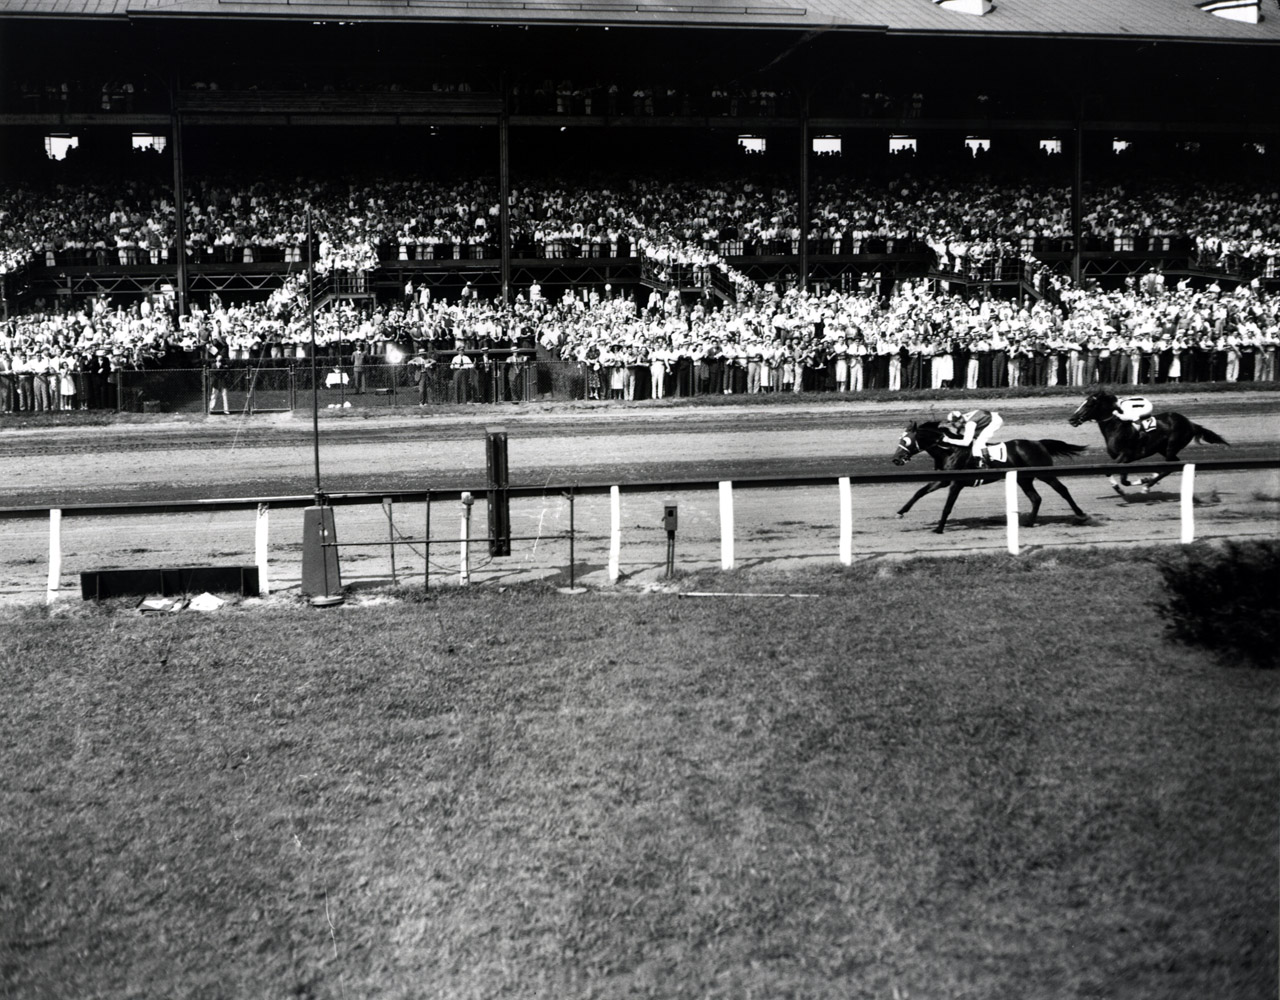 Seabiscuit (Red Pollard up) winning the 1937 Butler Handicap at Empire City (Museum Collection)